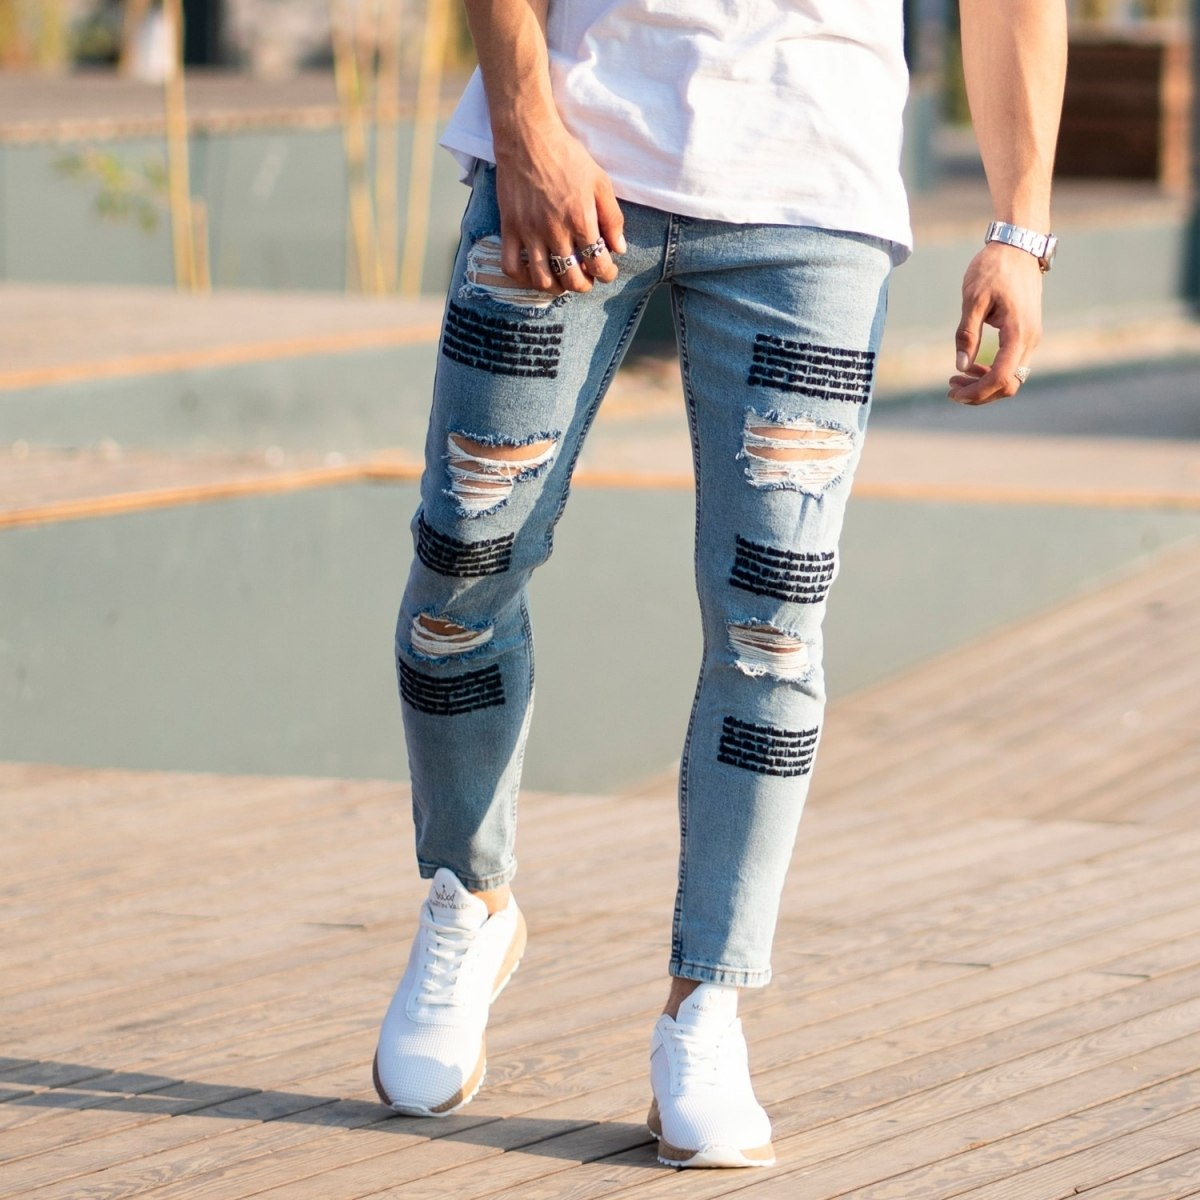 Men's Jeans With Fonts and Ribs